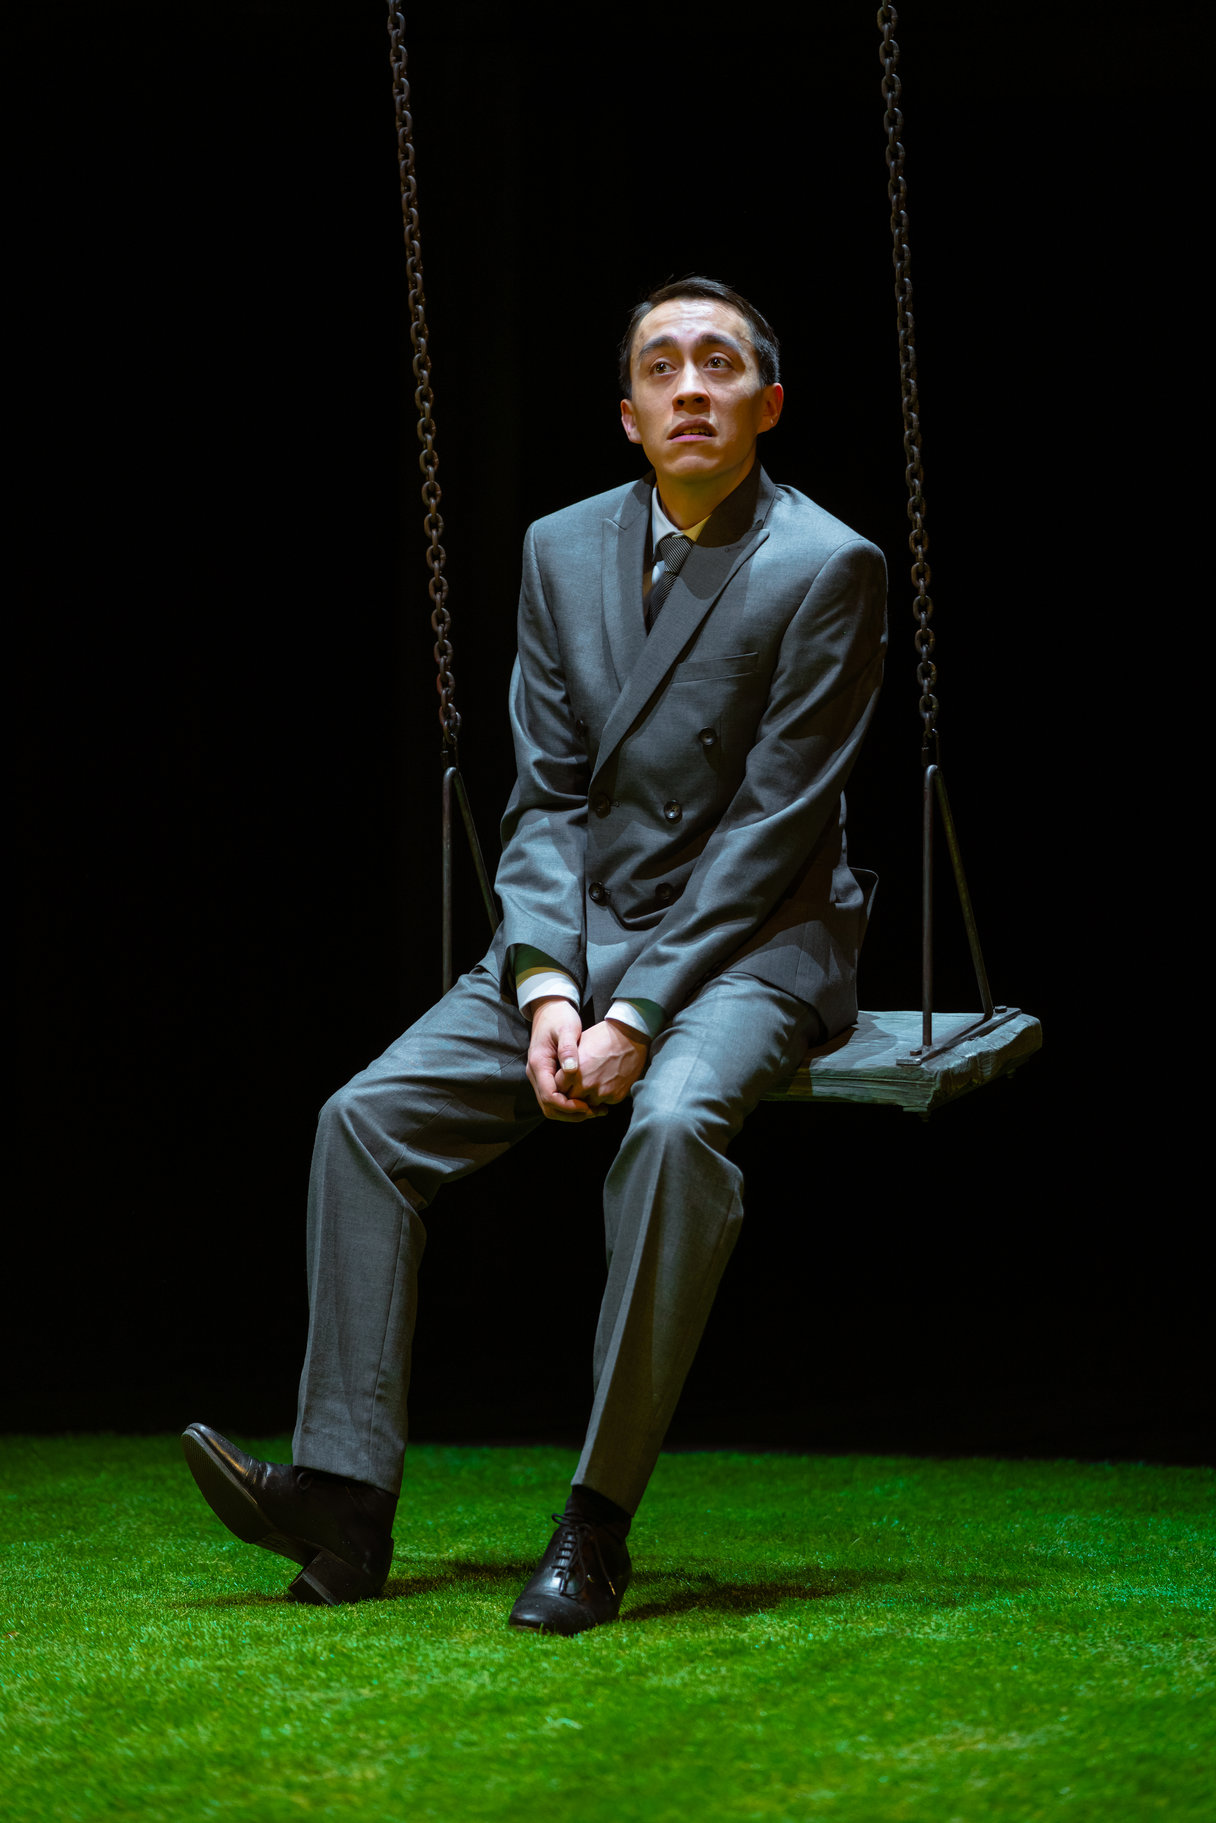 A man in a suit sits on a swing.